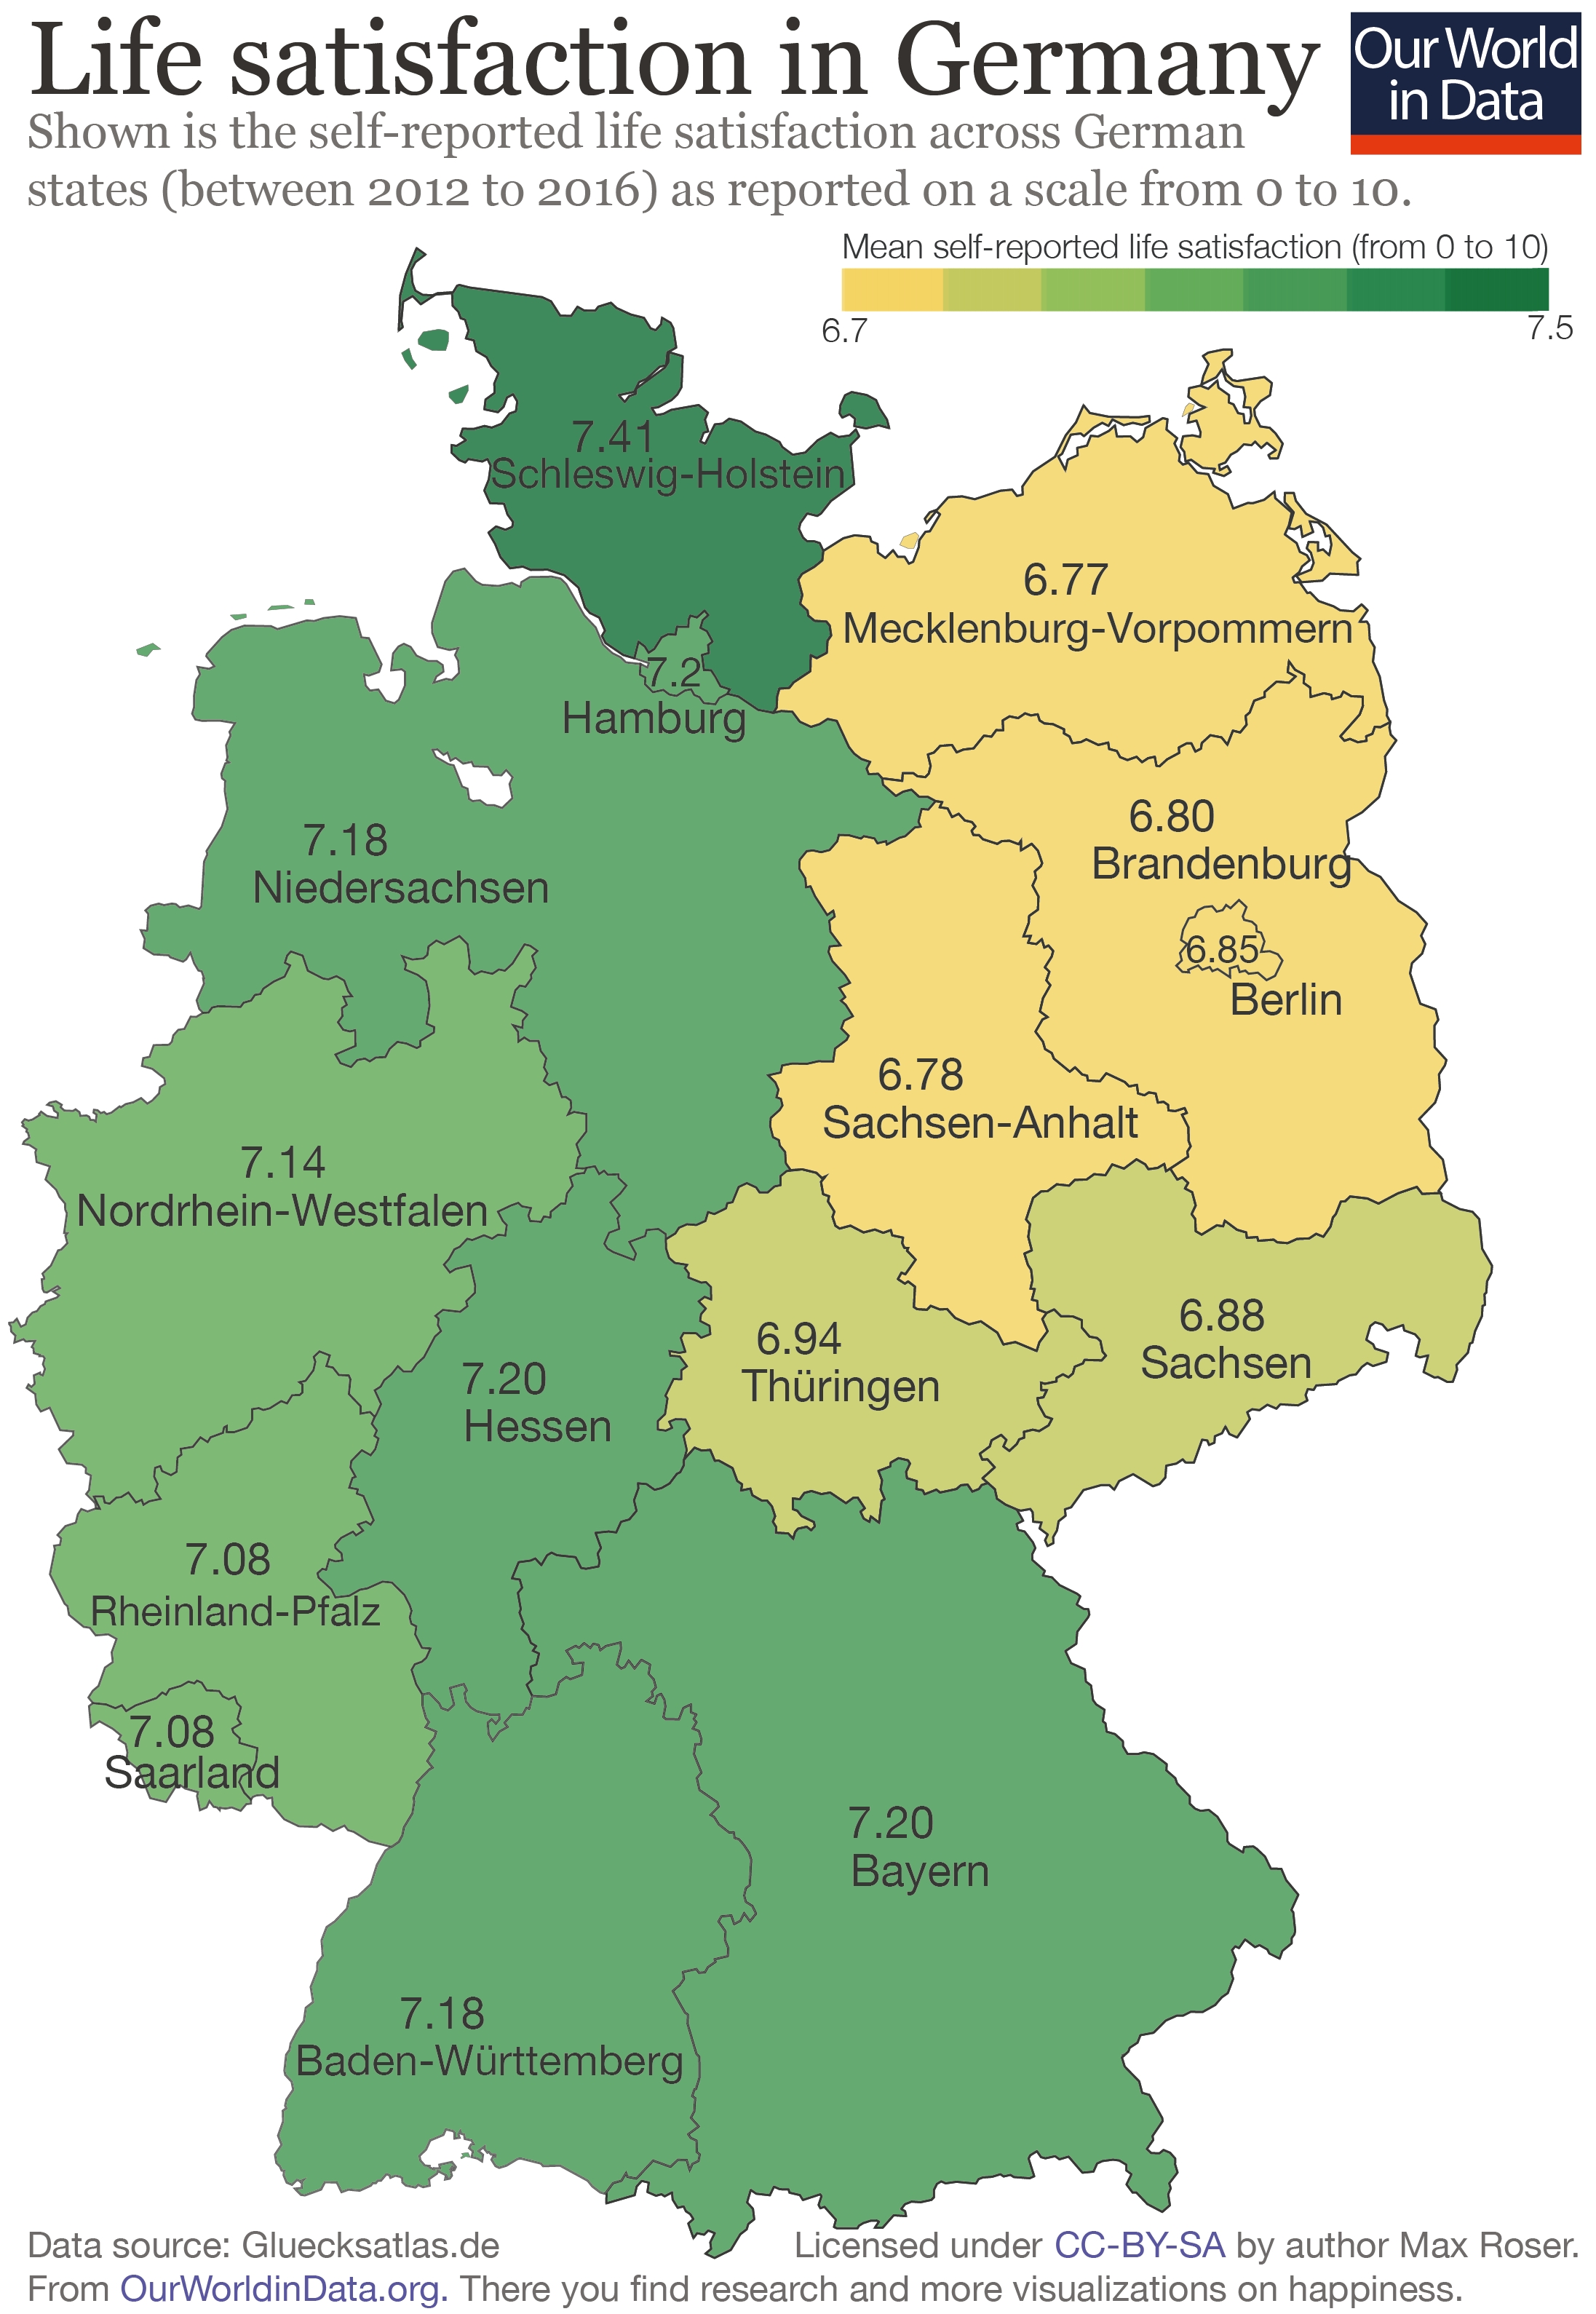 There Is A 'happiness Gap' Between East And West Germany - Our World pertaining to Berlin Germany On World Map